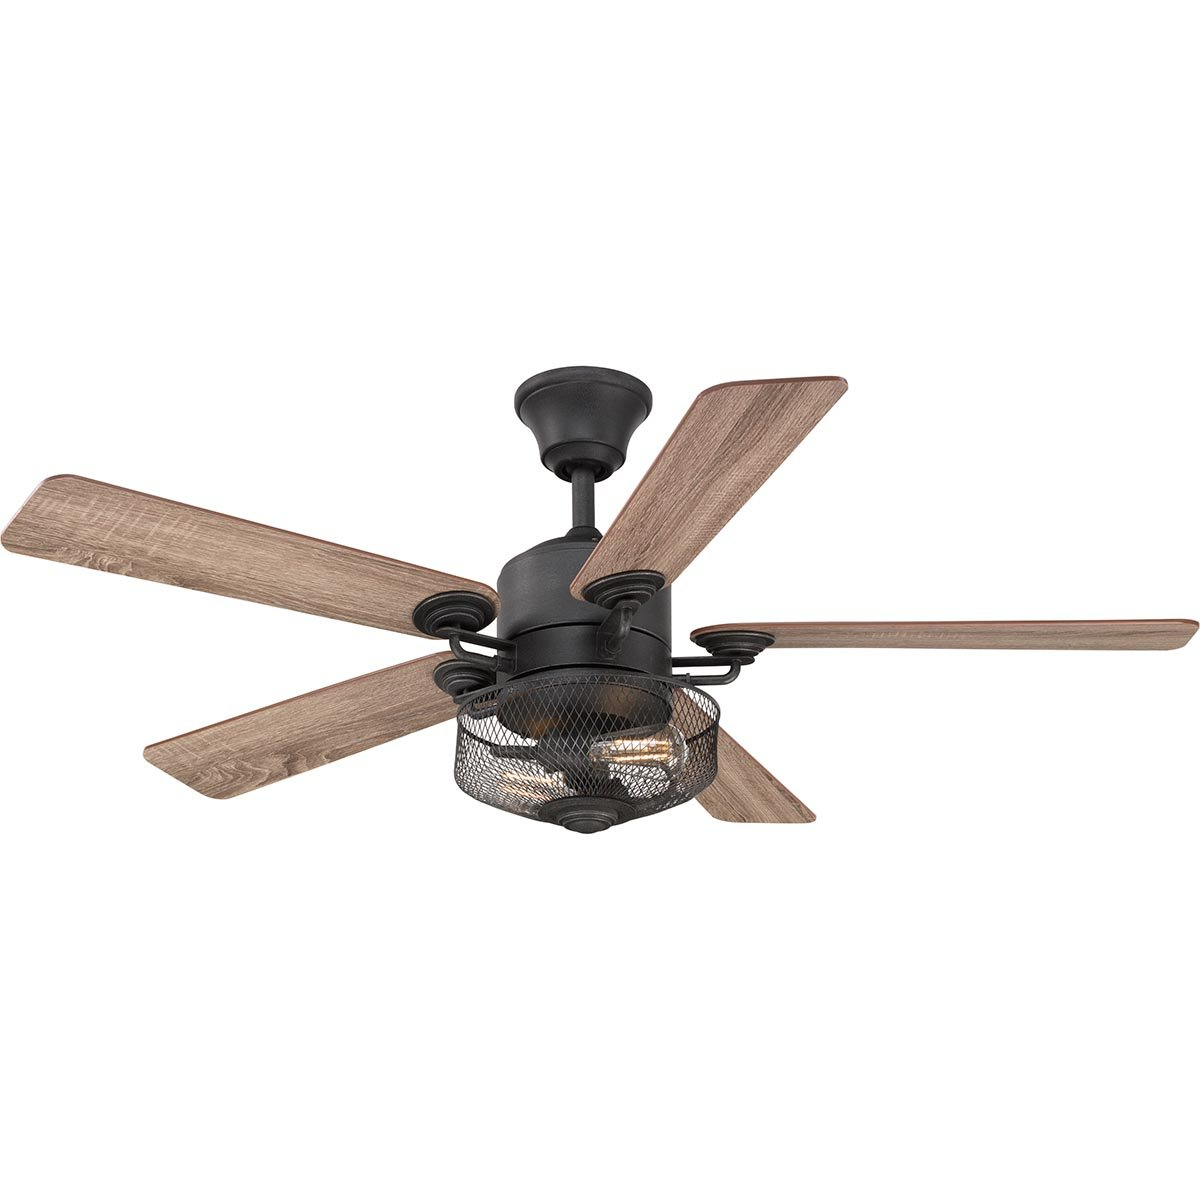 "Wilburton 5 Blade Ceiling Fans With Remote Within Well Known 54"" Clauson 5 Blade Ceiling Fan With Remote (View 20 of 20)"